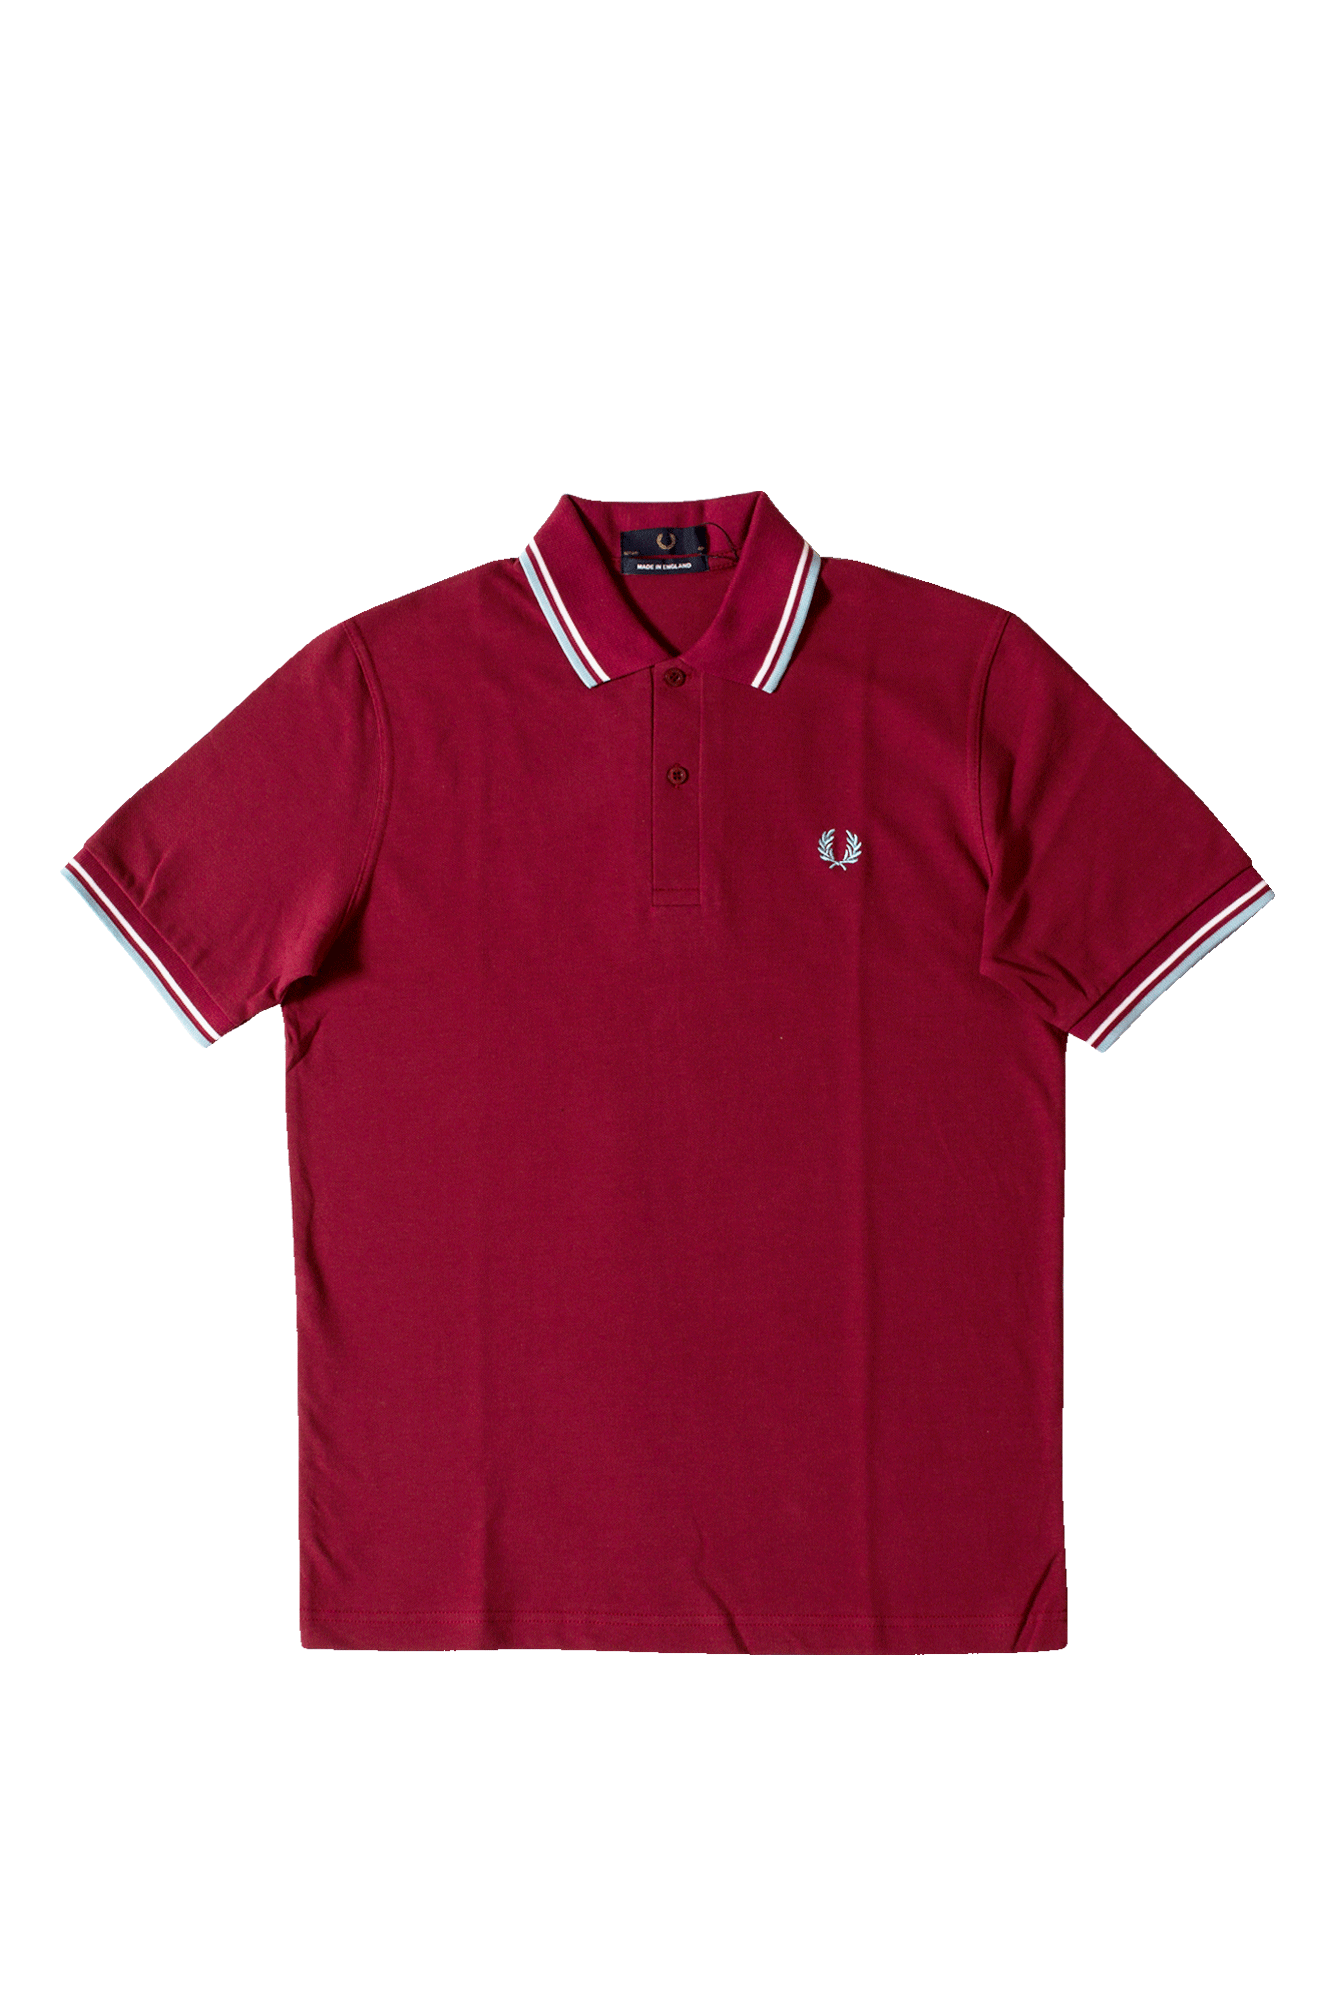 Twin Tipped Fred Perry Polo Shirt Marrone